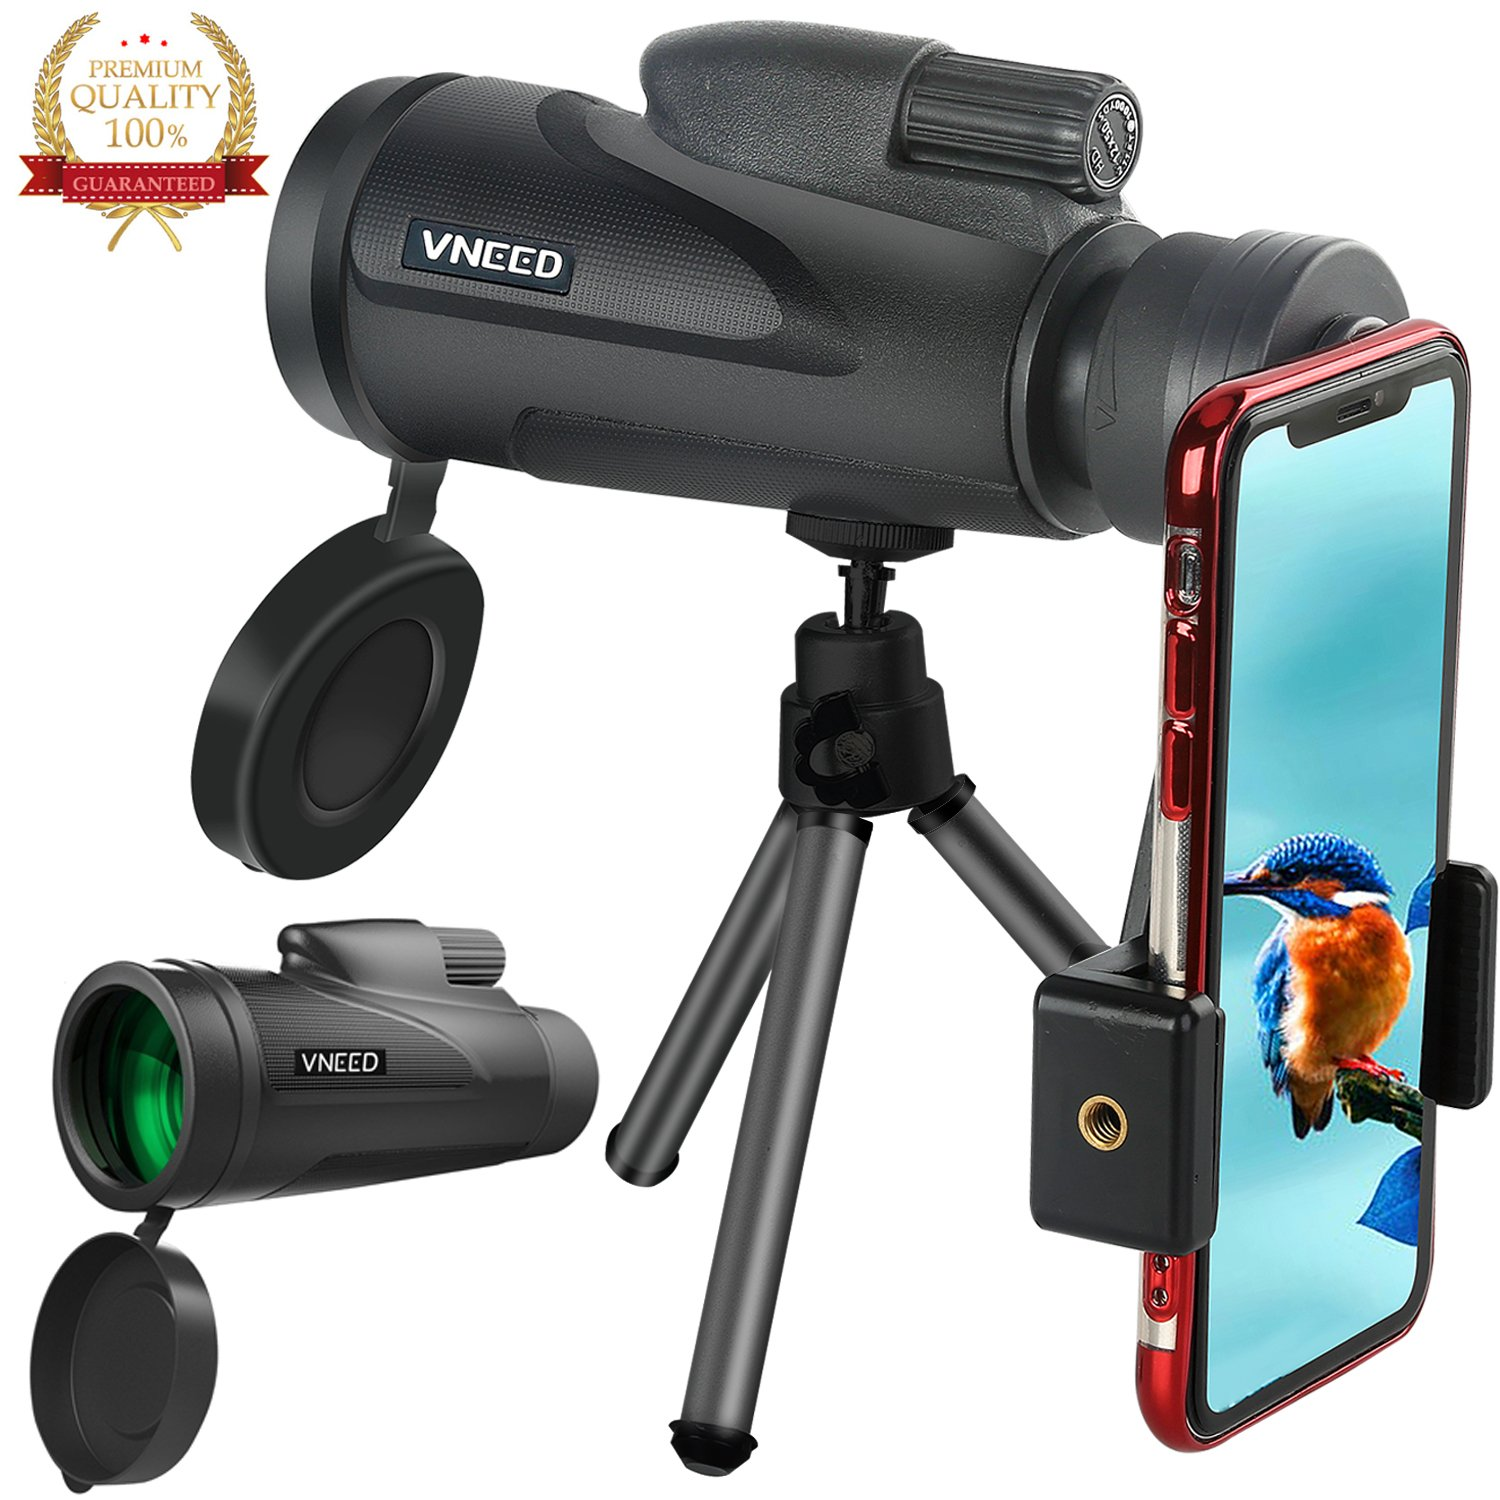 Monocular Telescope for phone 12X50 High-powered BAK4 Prism Low Night Vision Waterproof Fog-proof Smartphone Adapter Tripod Holder for Bird Watching Hunting Camping Hiking Travelling Wildlife (B) by VNEED